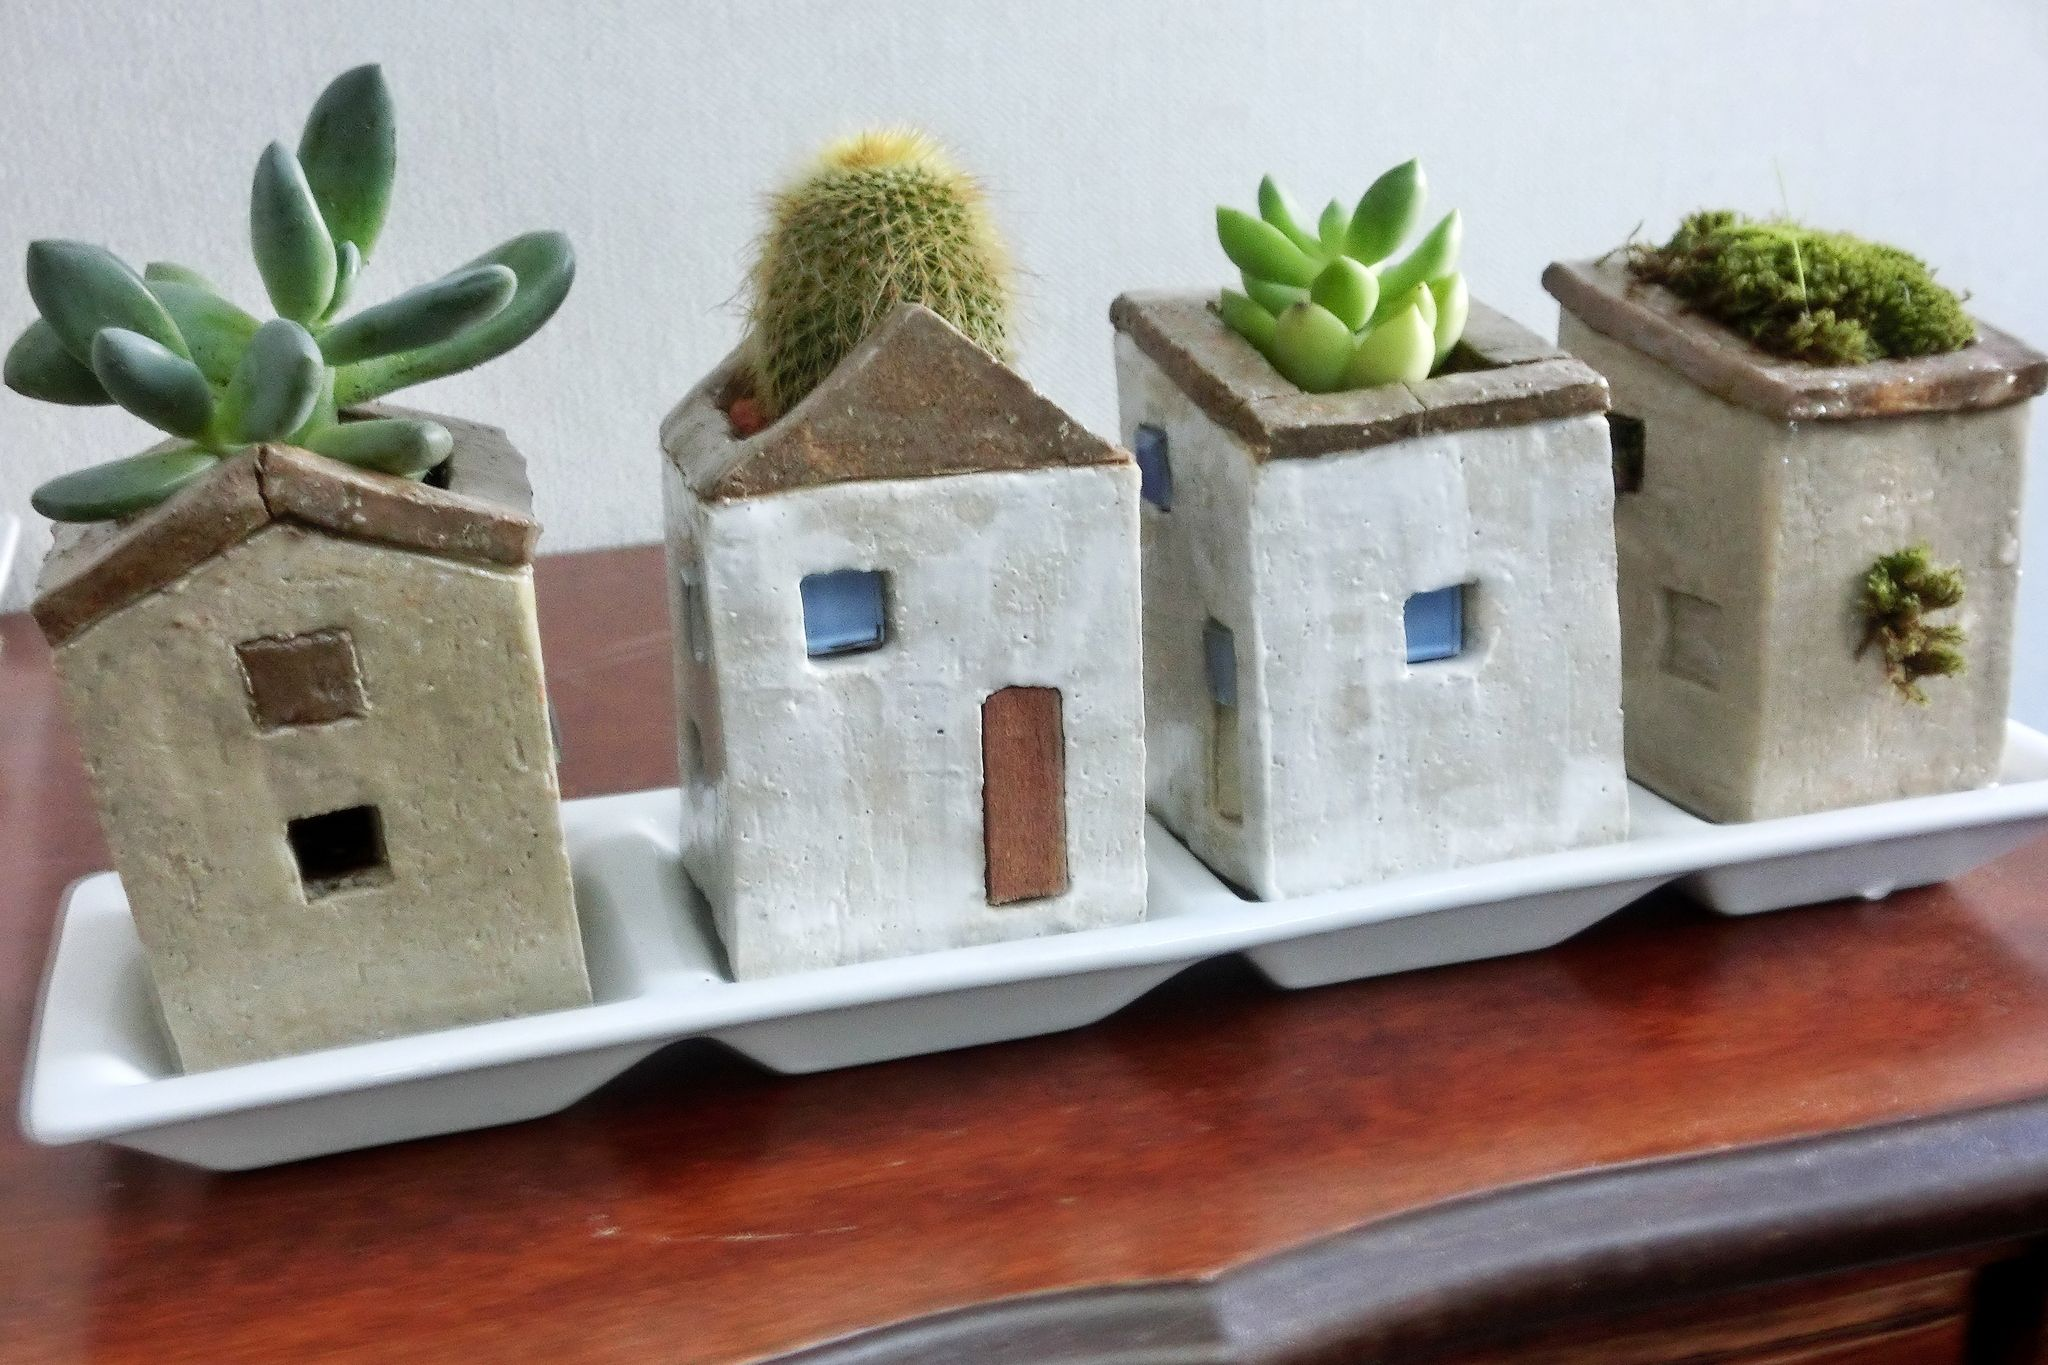 Ceramic Pottery For Plants Little Houses Plant Growing On A Roof My Work Pottery